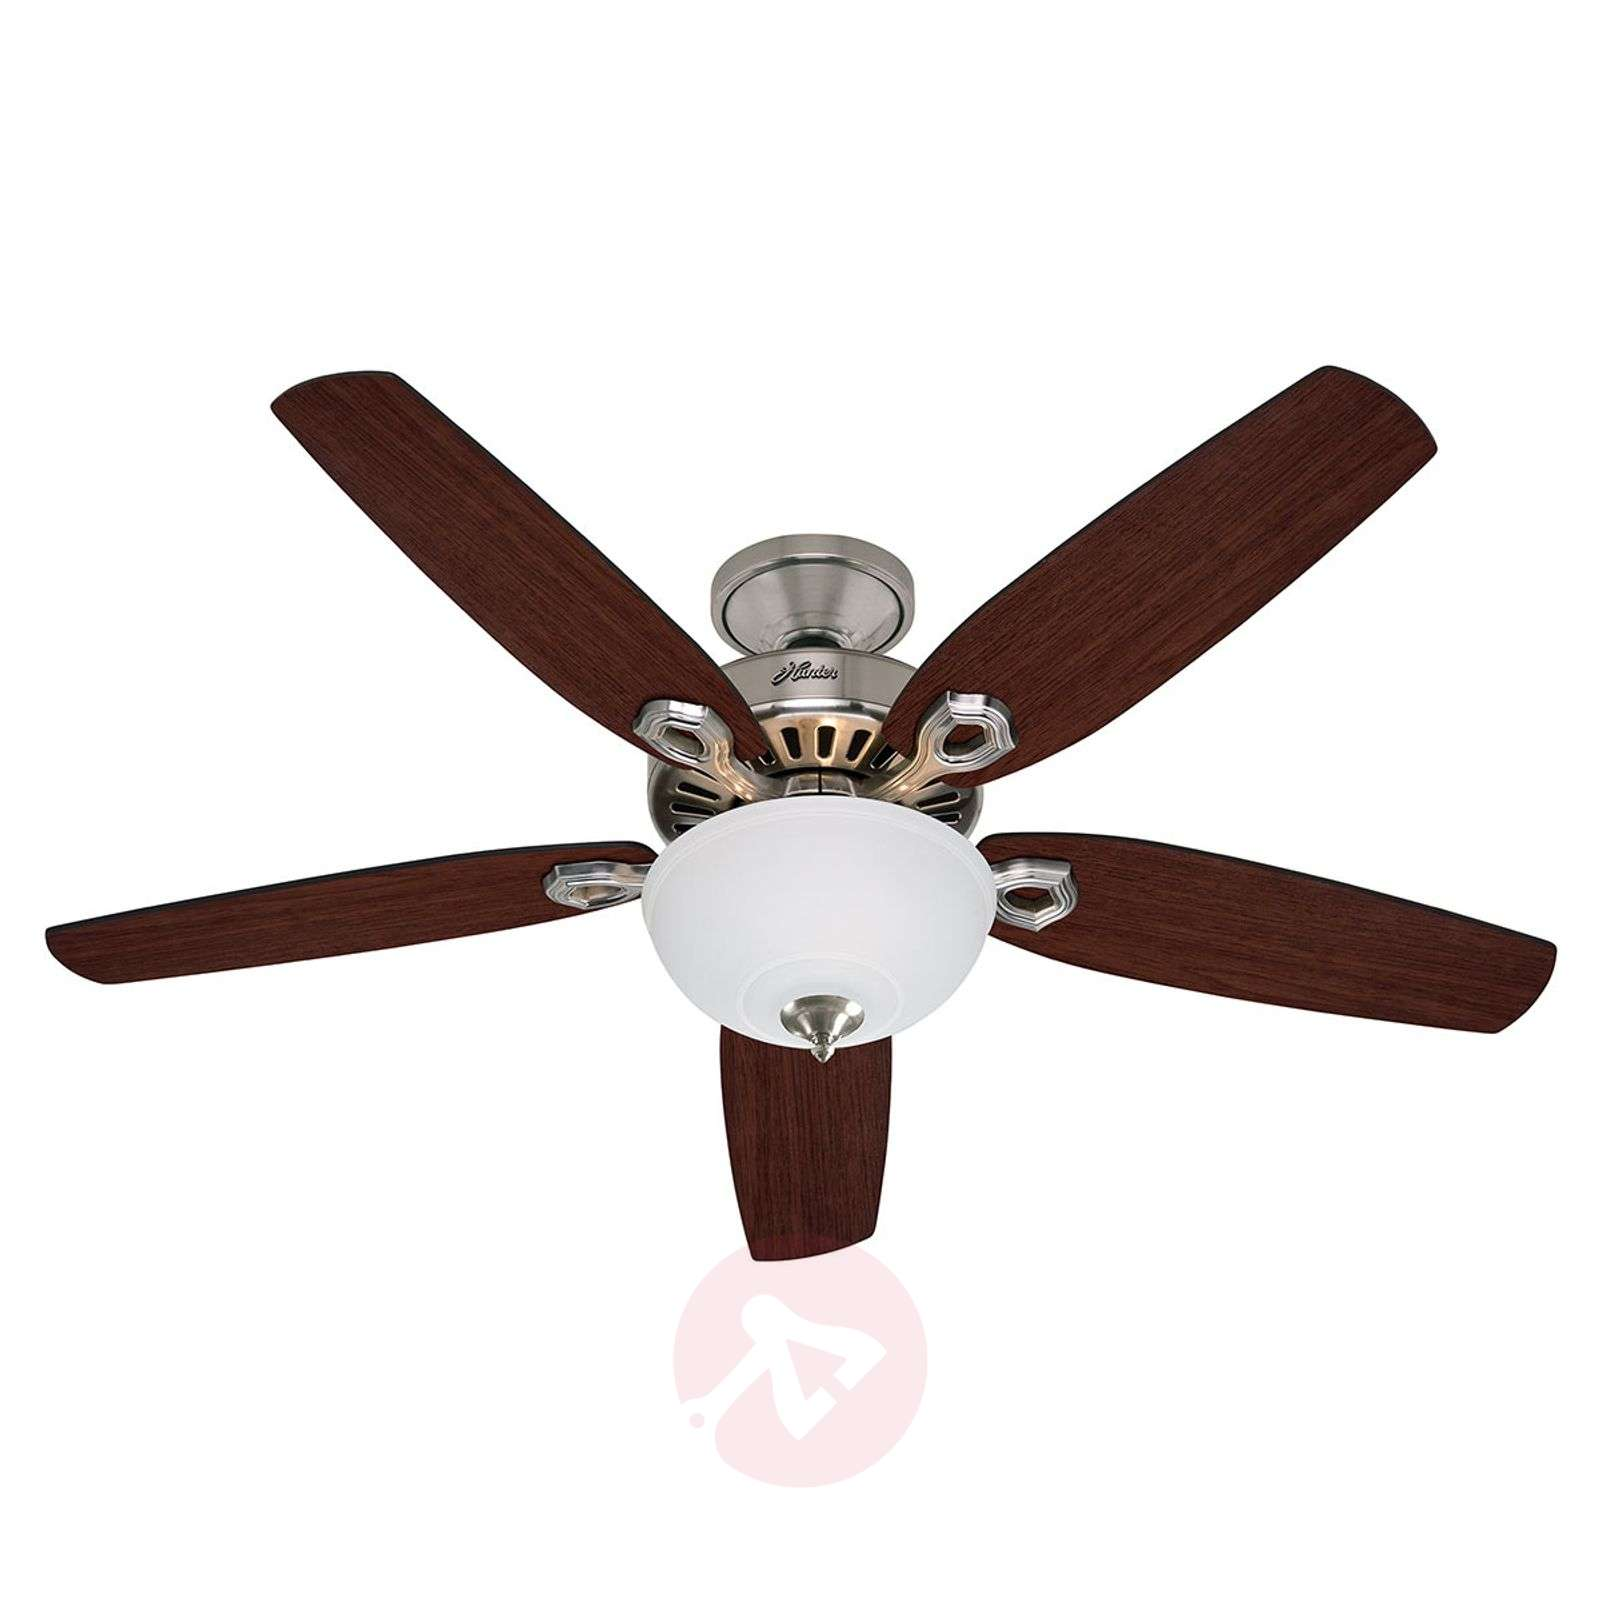 Hunter Builder Deluxe ventilateur plafond, chromé-4545008-01